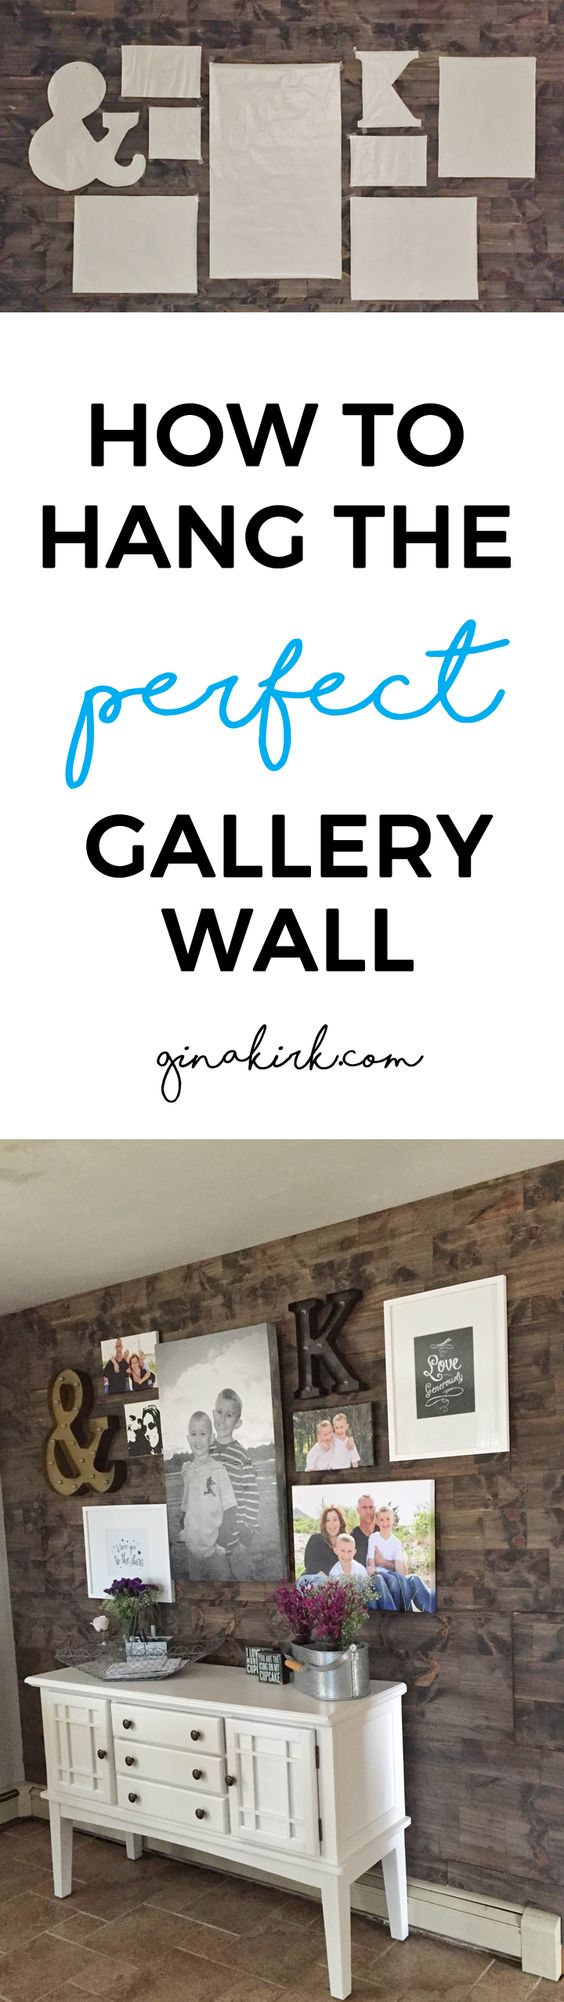 How To Hang A Gallery Wall Fixer Upper Kitchen Gallery And Barn Boards